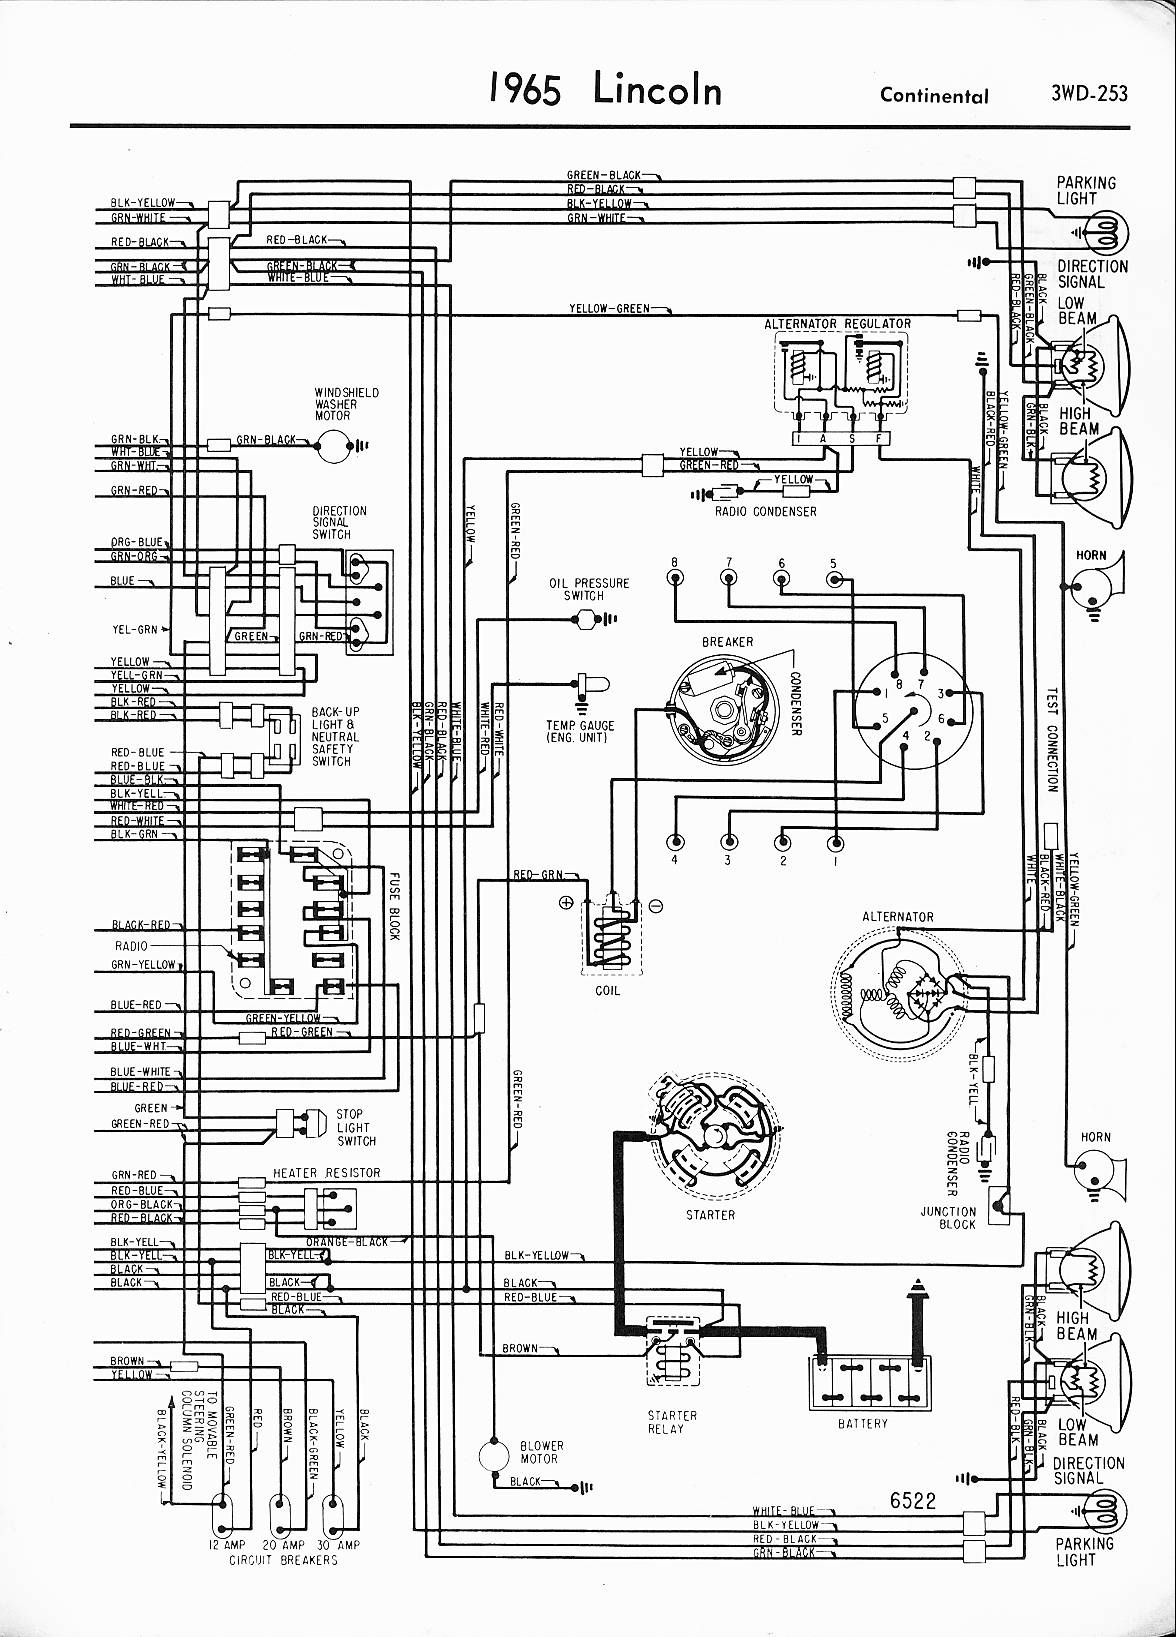 1965 Lincoln Wiring Diagram Diagrams Clicks Ford Thunderbird 65 Auto Electrical 1953